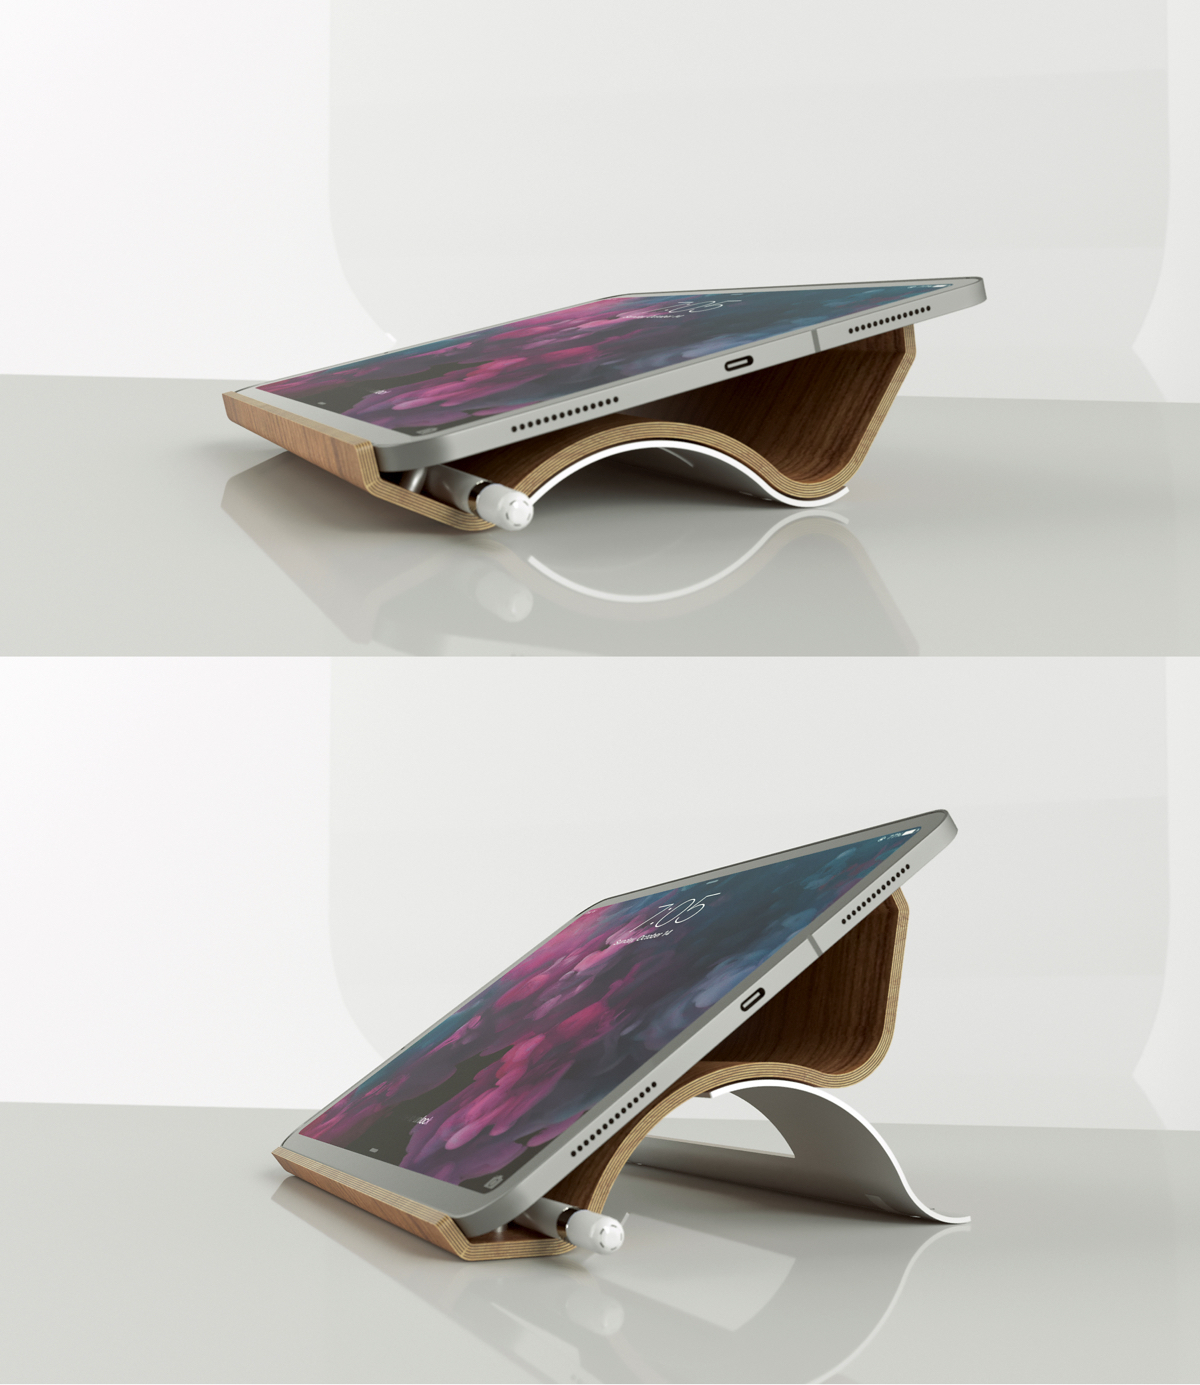 Stand-Up, il supporto per iPad Made In Italy sbarca su Kickstarter